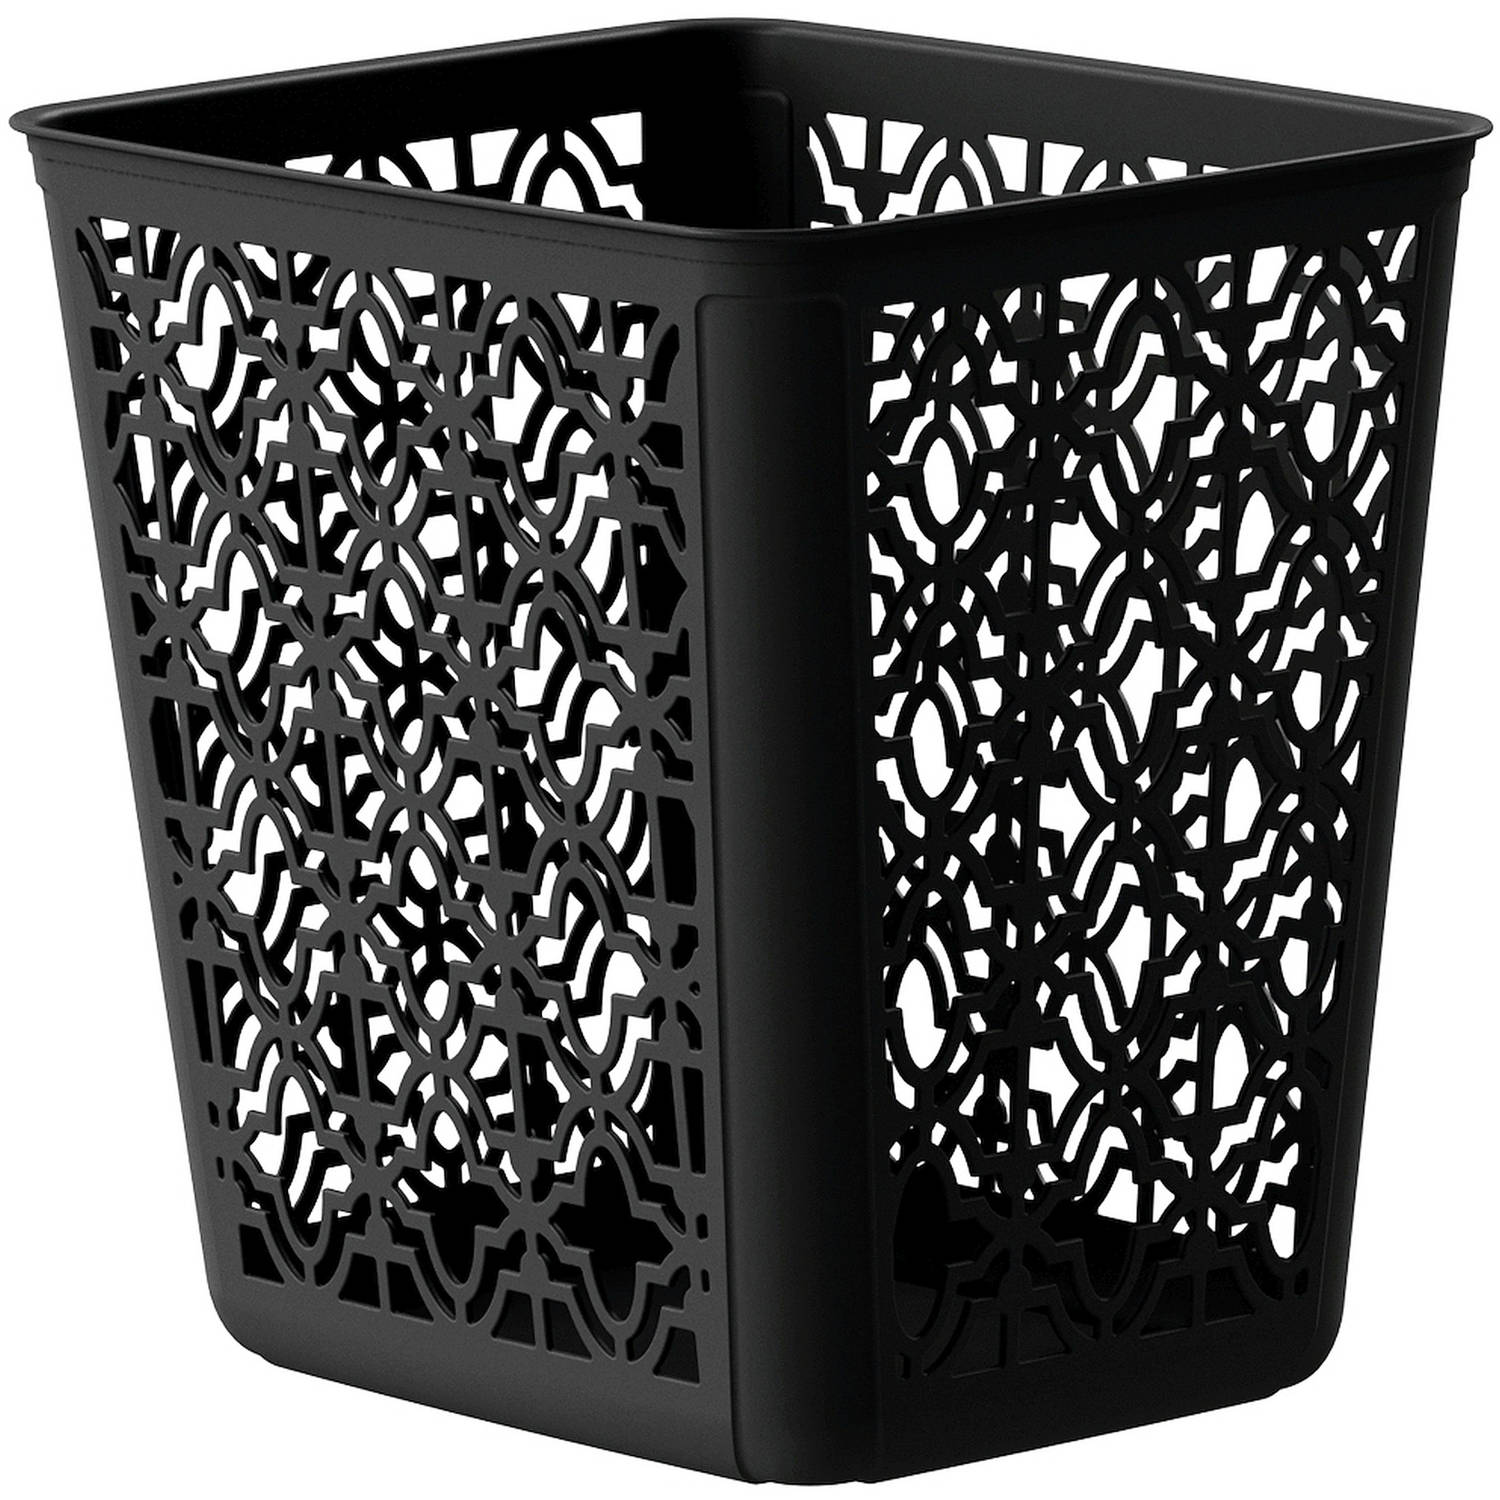 4-Gallon Trellis Waste Basket